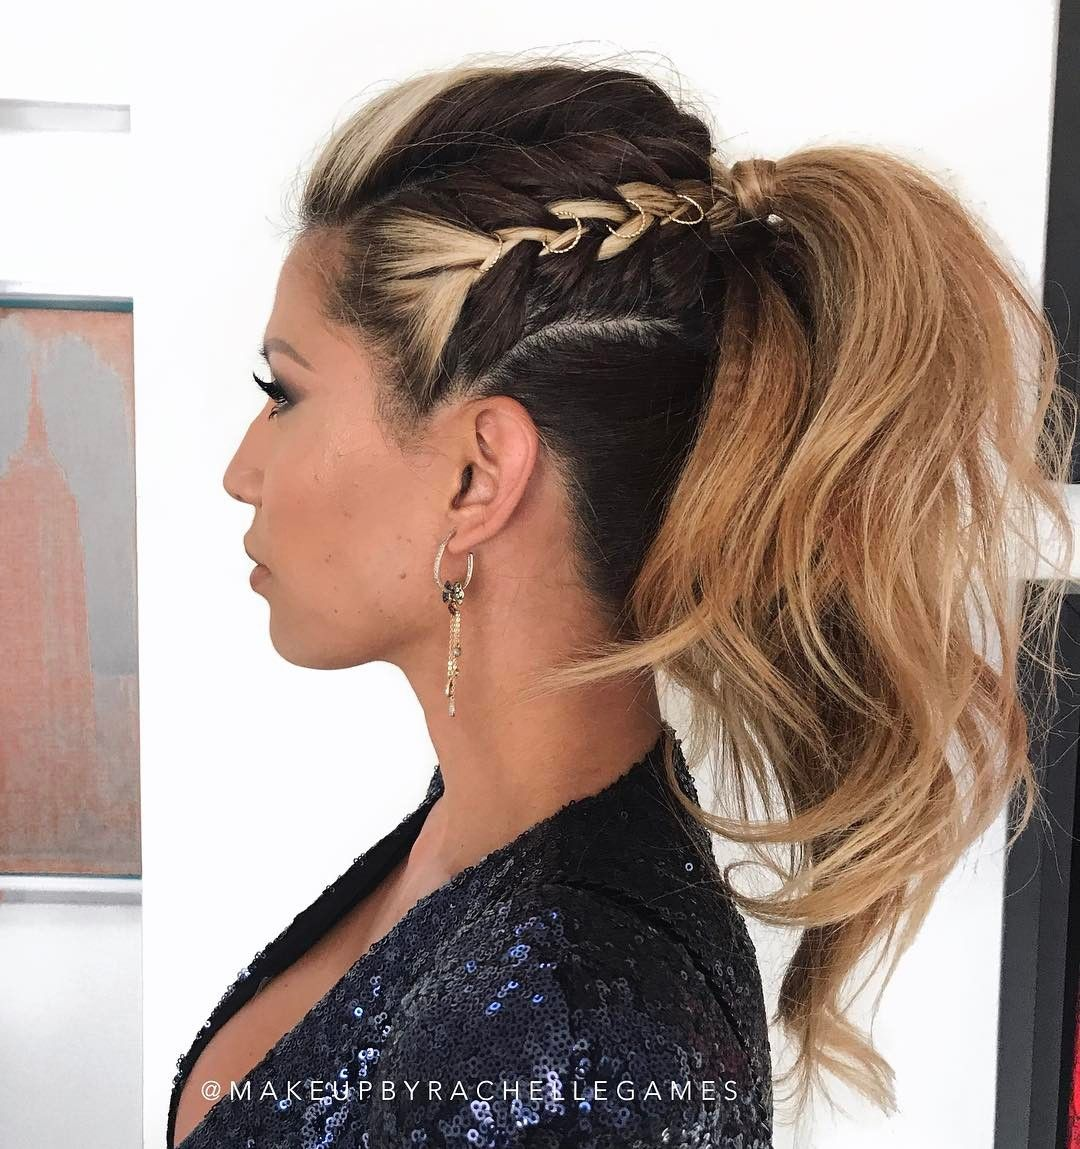 Ponytail Hairstyles Ponytail Hair Styles For Women  Best Ponytail Hairstyle Designs